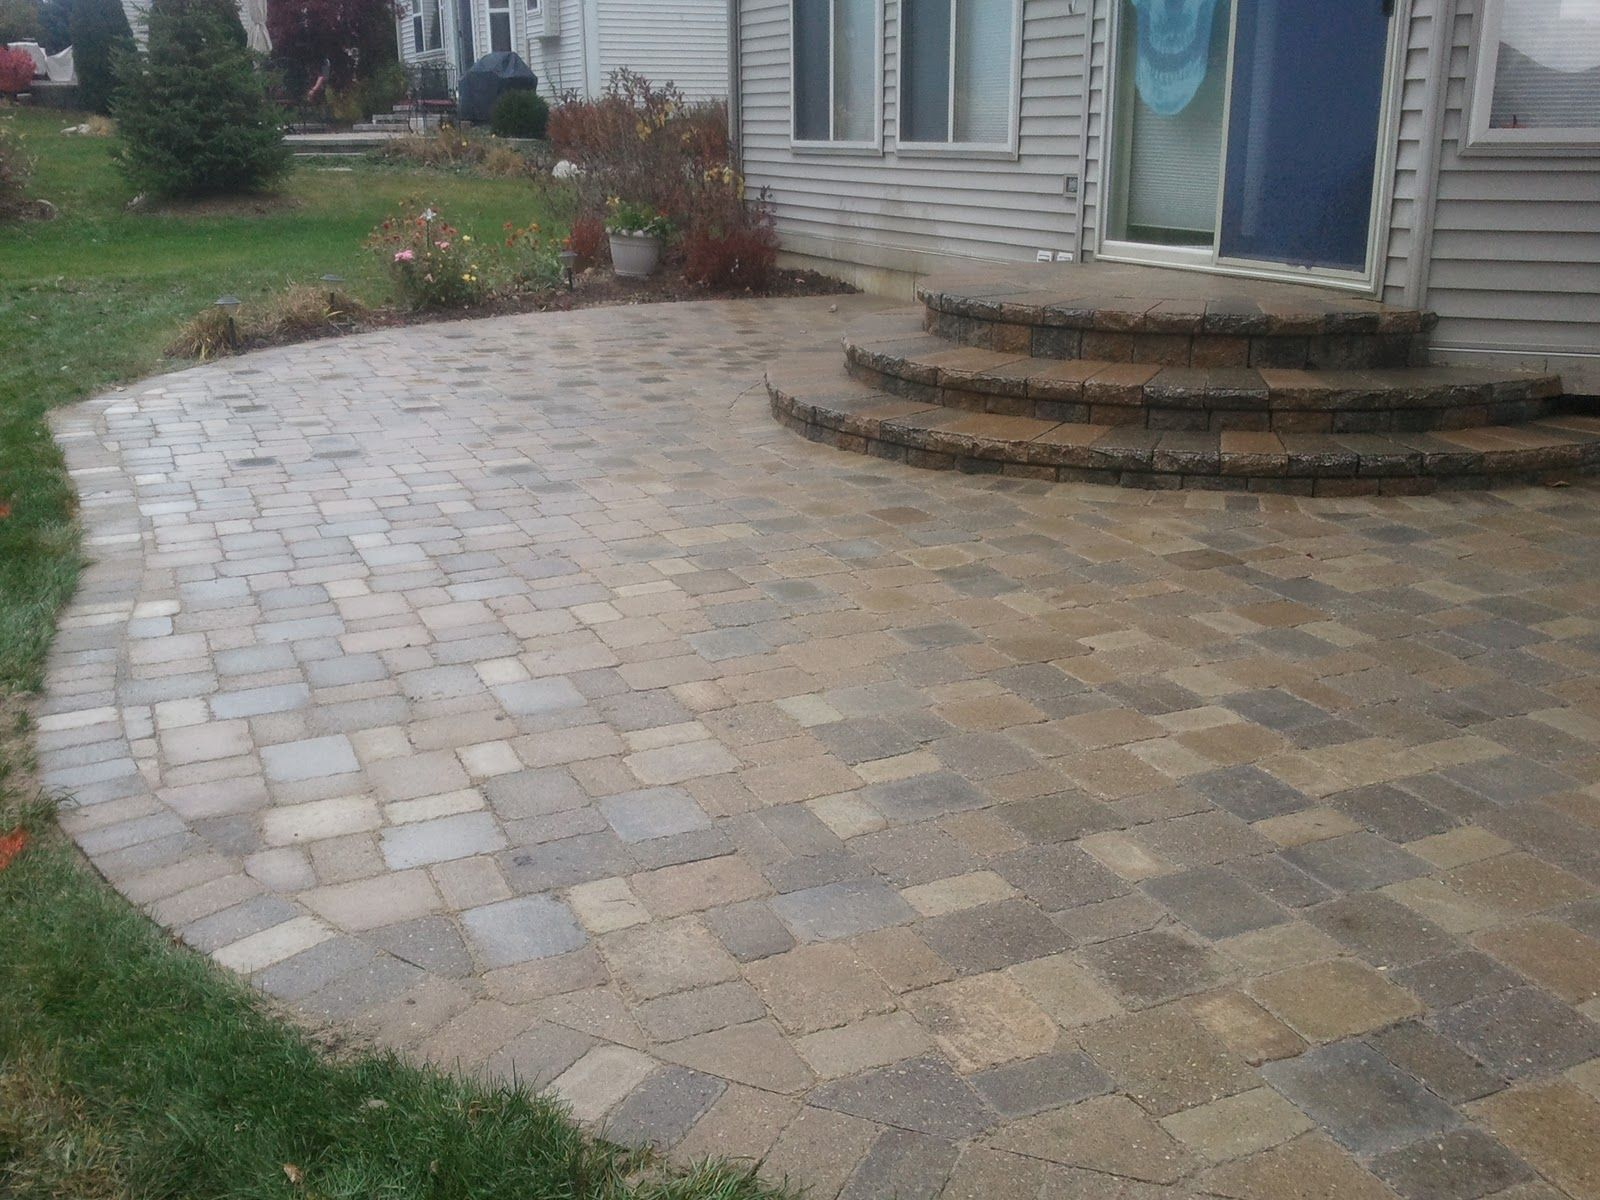 paver stone patio ideas best 20 paver patio designs ideas on pinterest best stone patio ideas - Patio Stone Ideas With Pictures